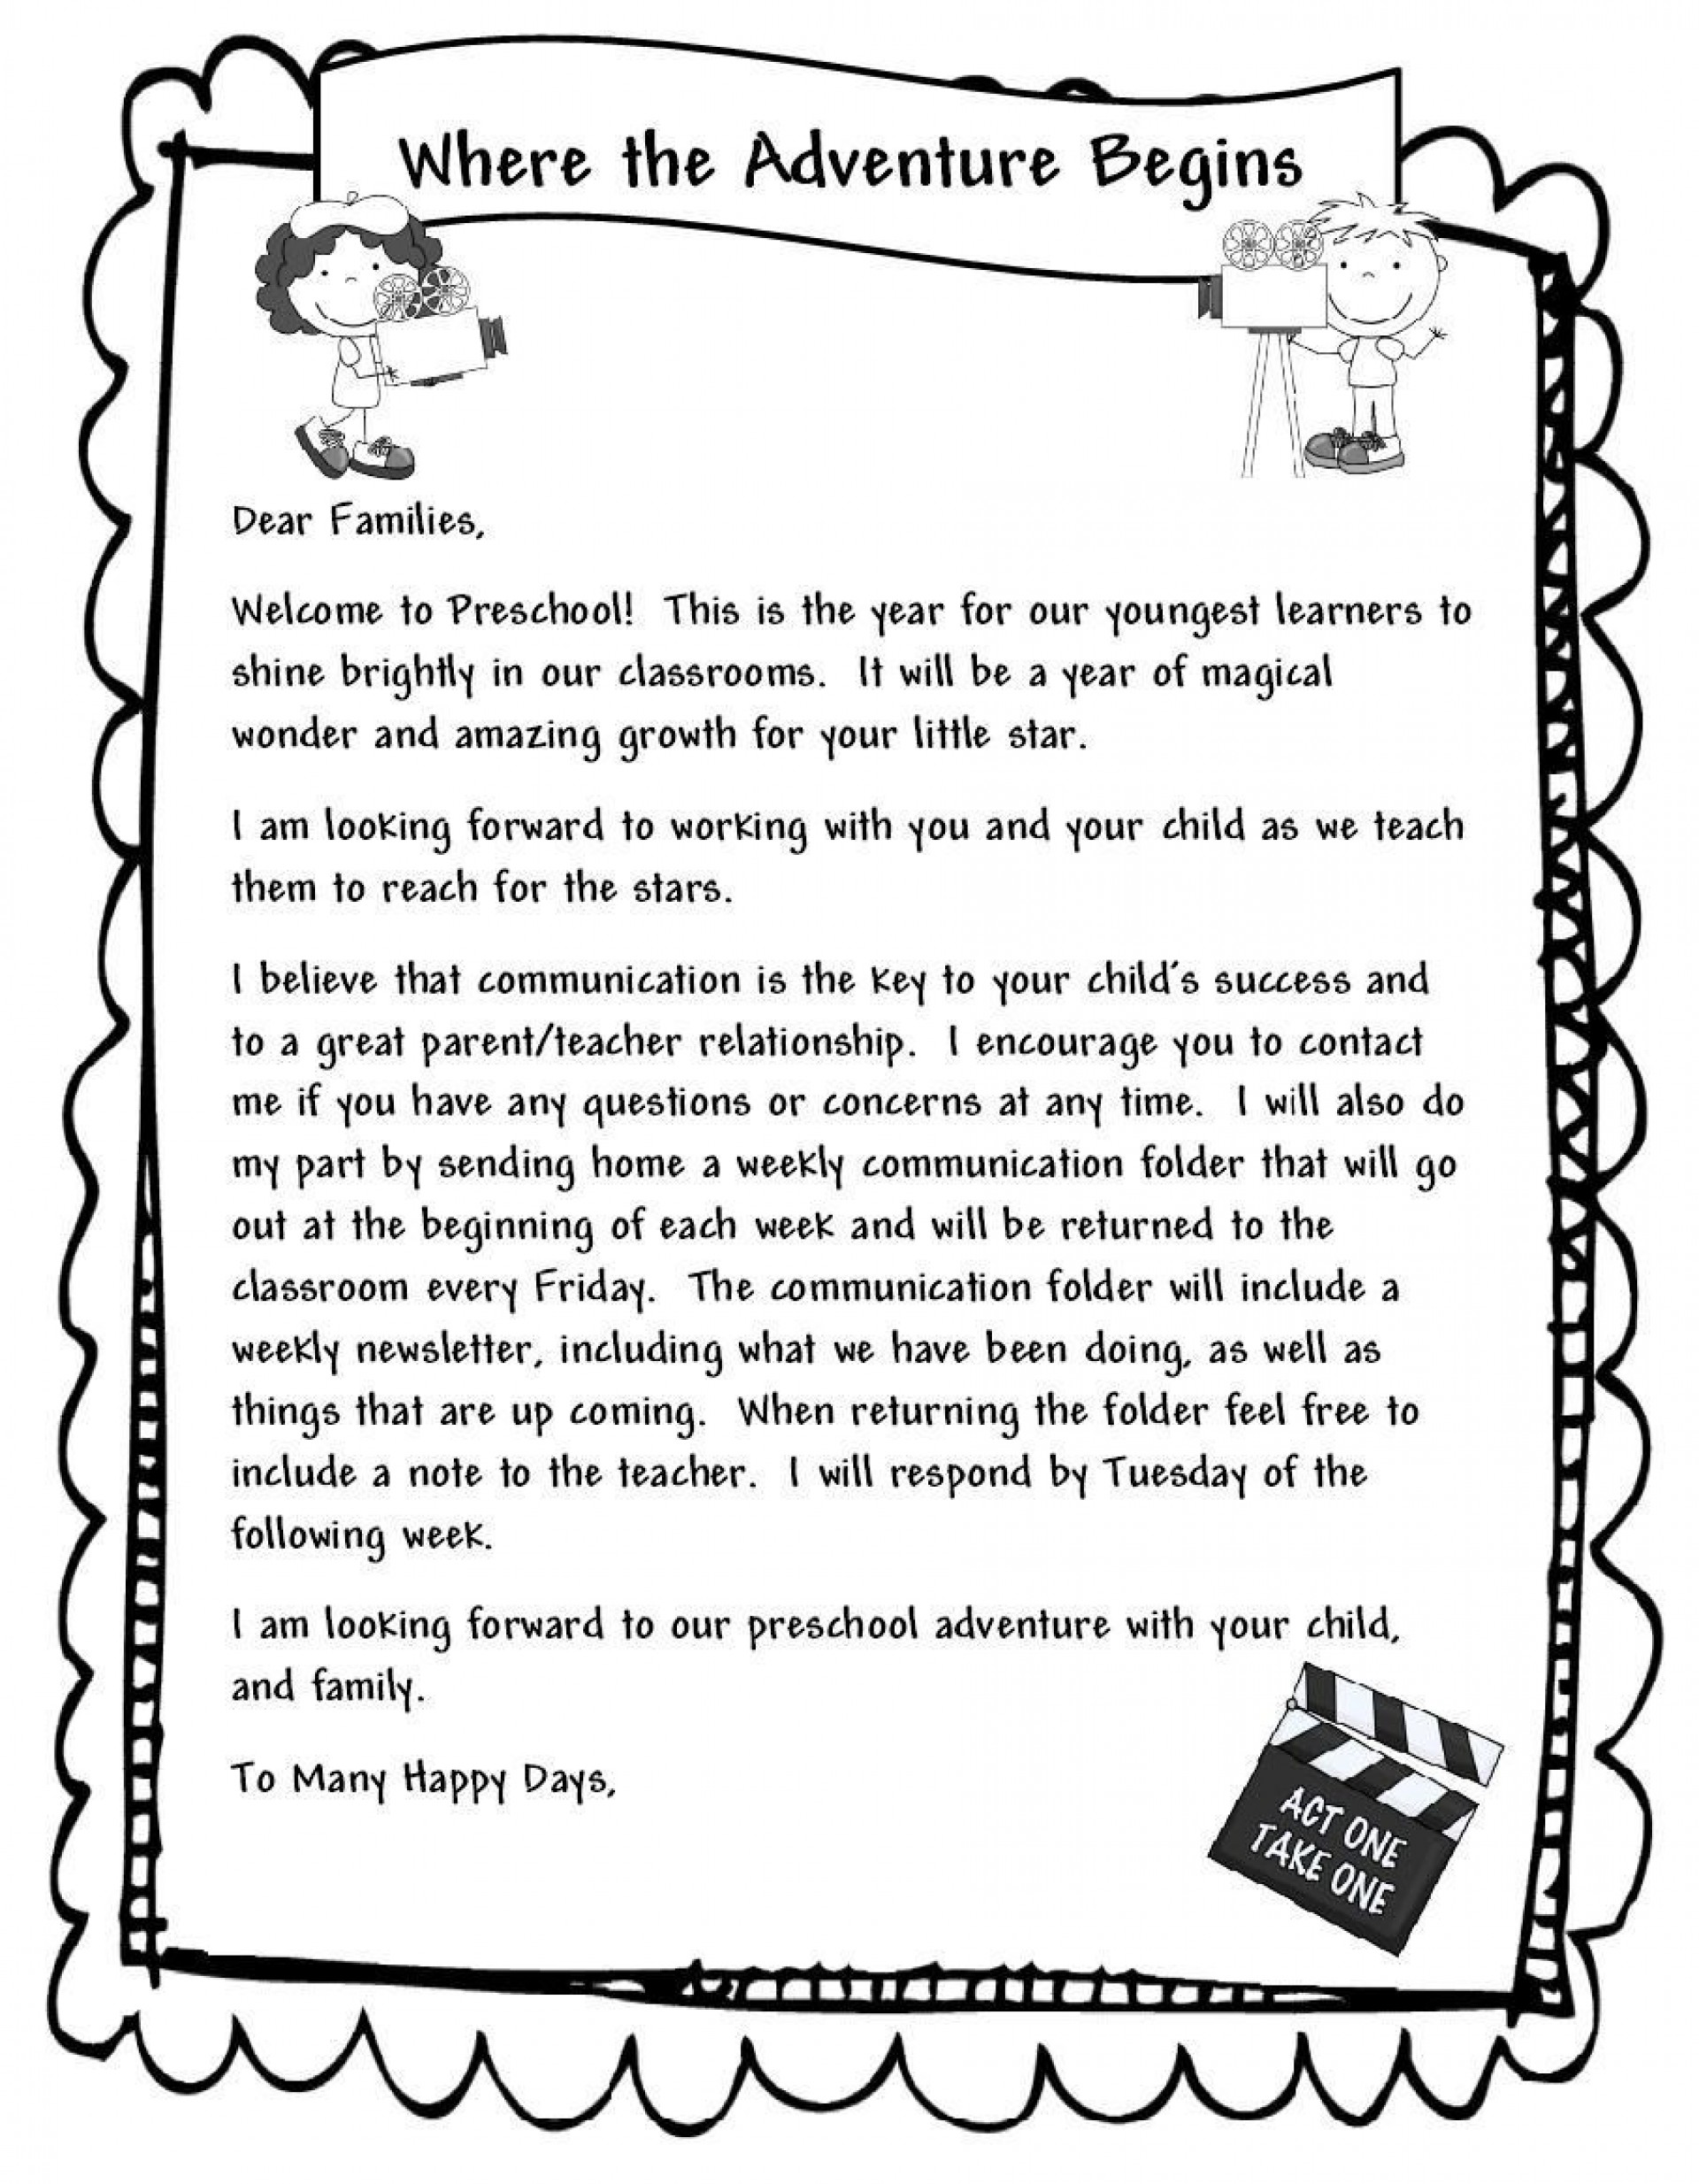 000 Unbelievable Teacher Welcome Letter Template Example  Preschool To Parent From Free1920